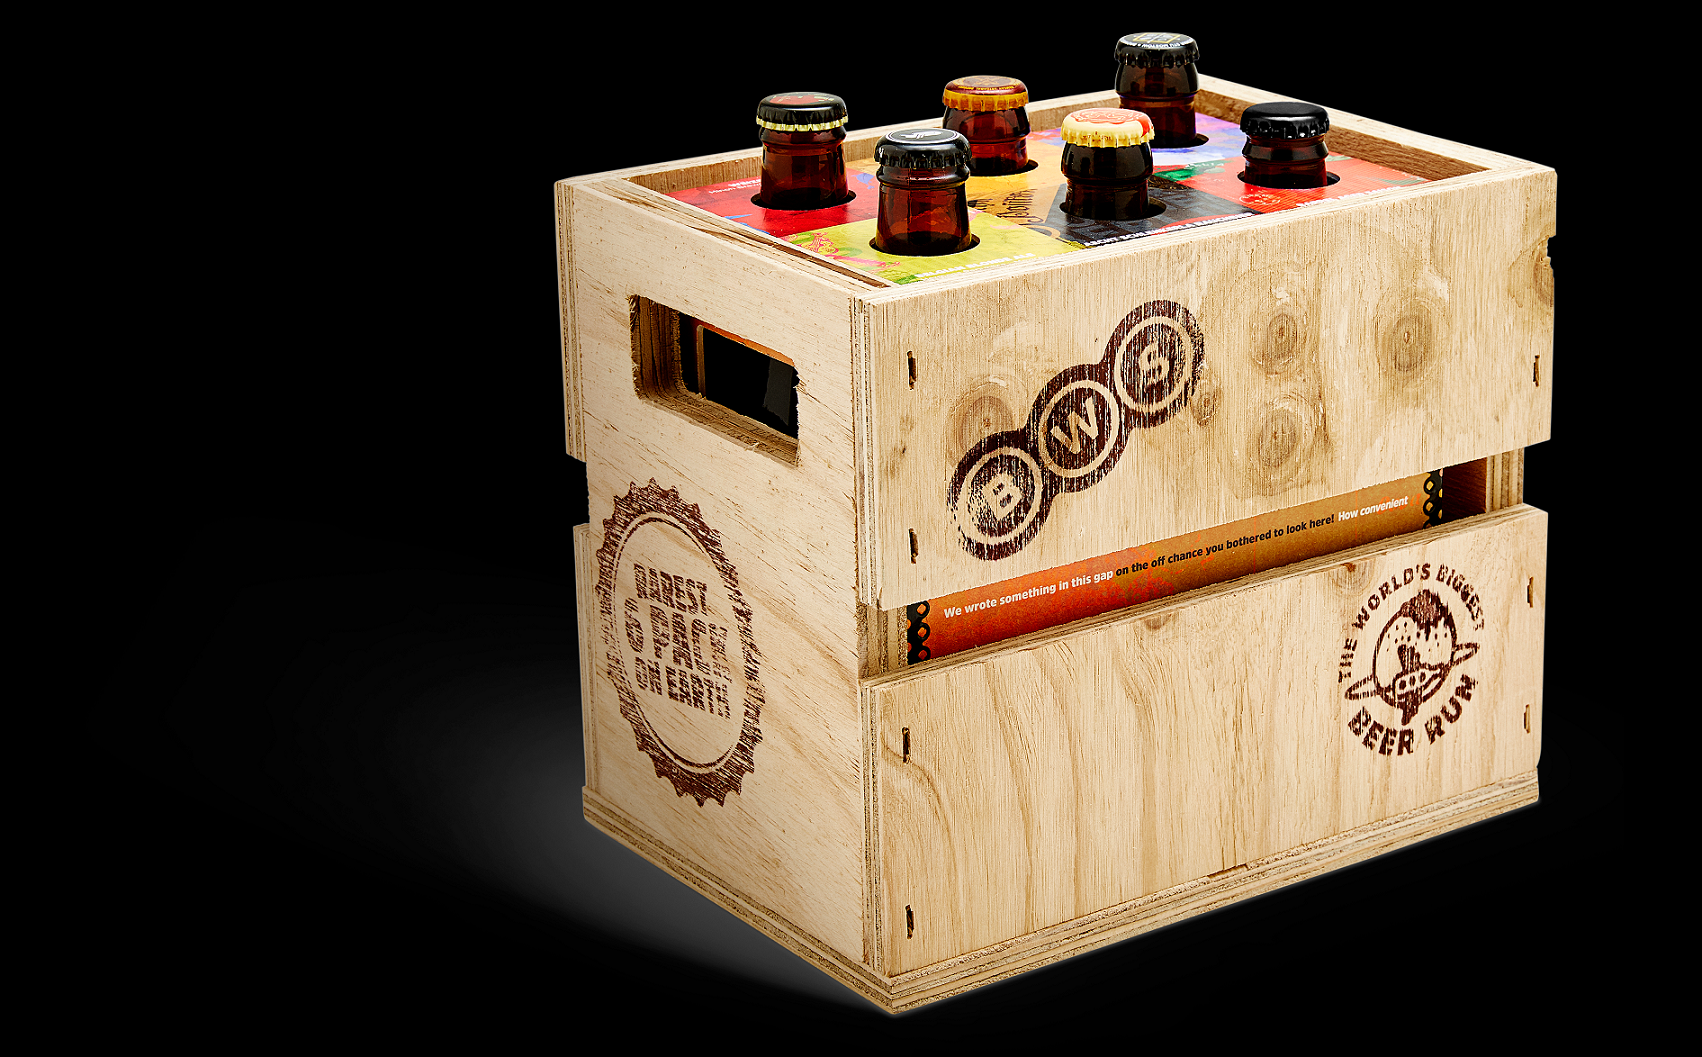 BWS World Beer Crate